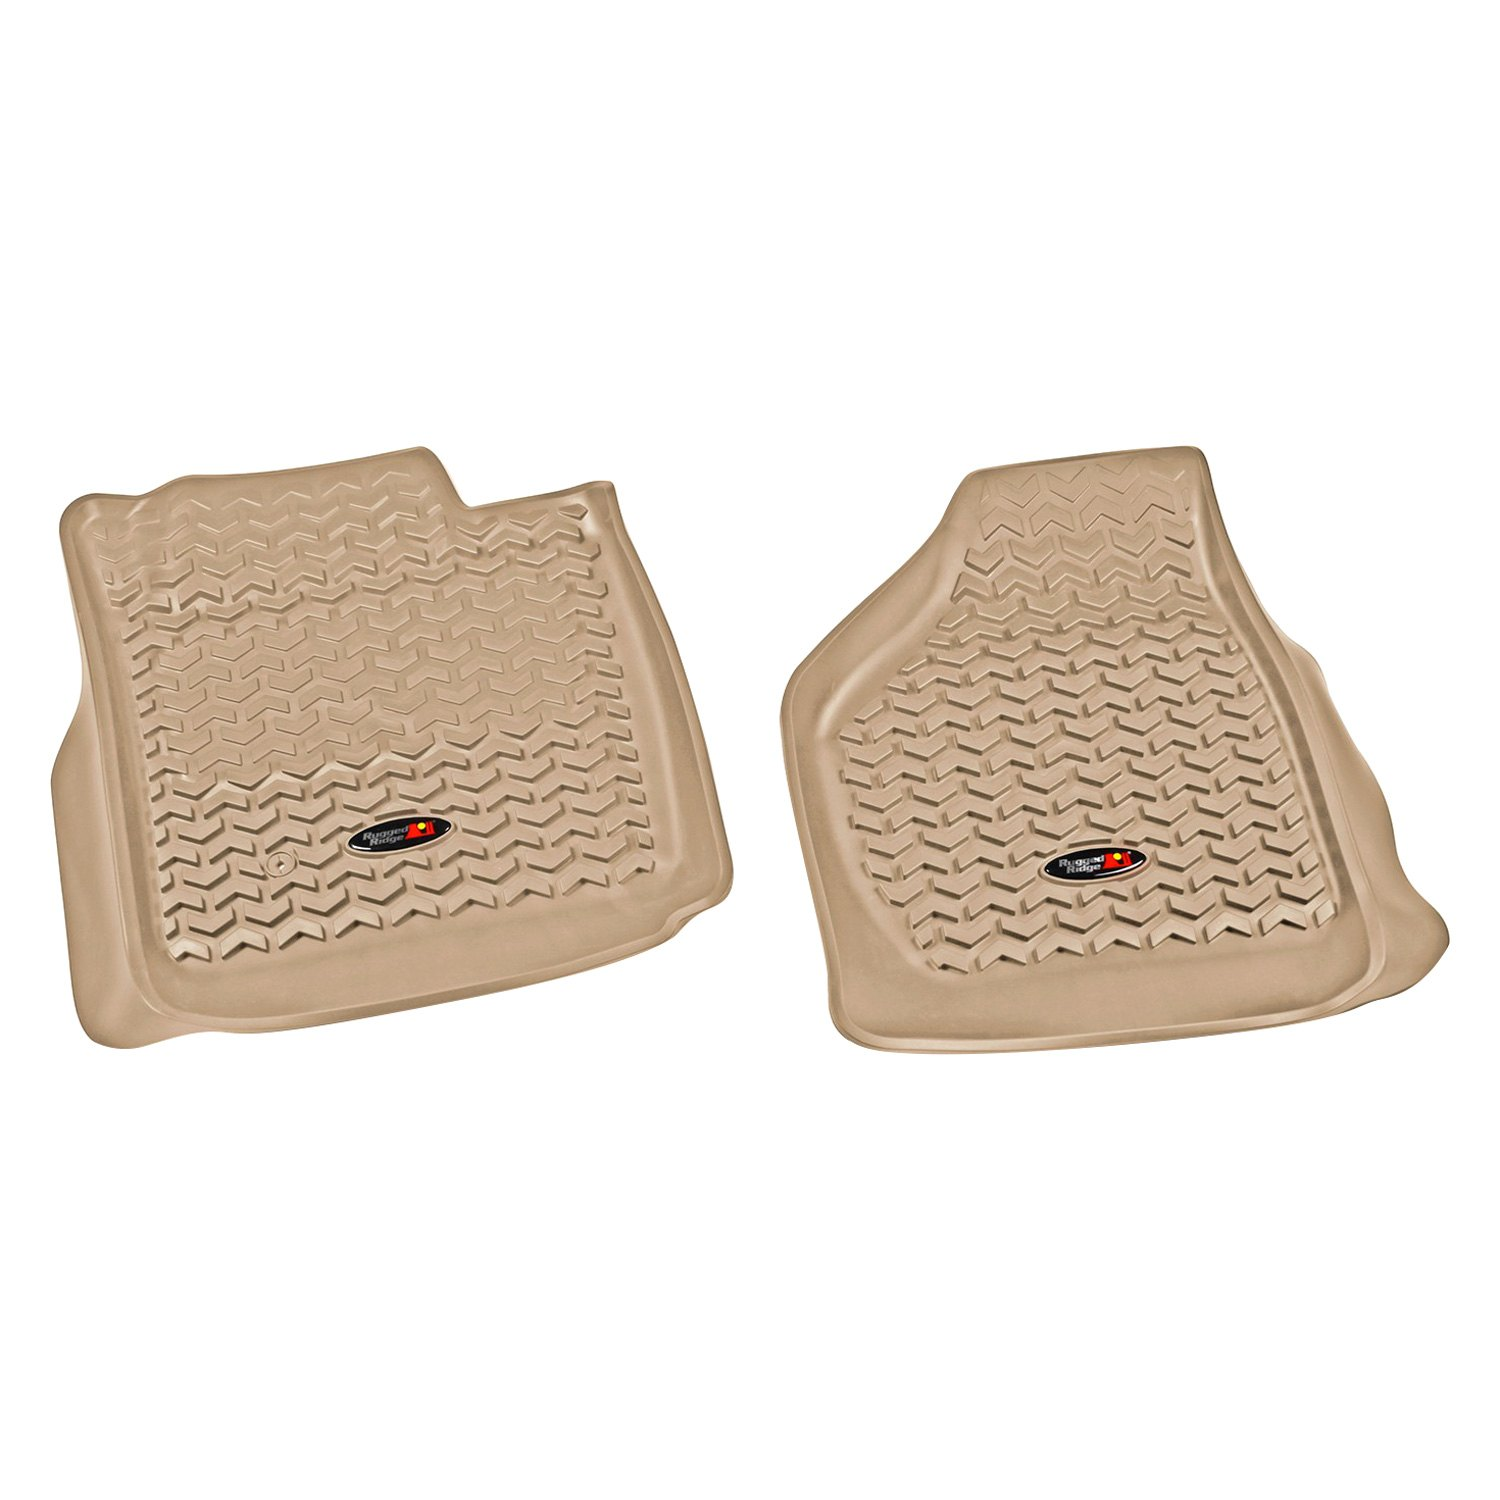 ford f 150 floor mats liners autoanything auto accessories. Black Bedroom Furniture Sets. Home Design Ideas